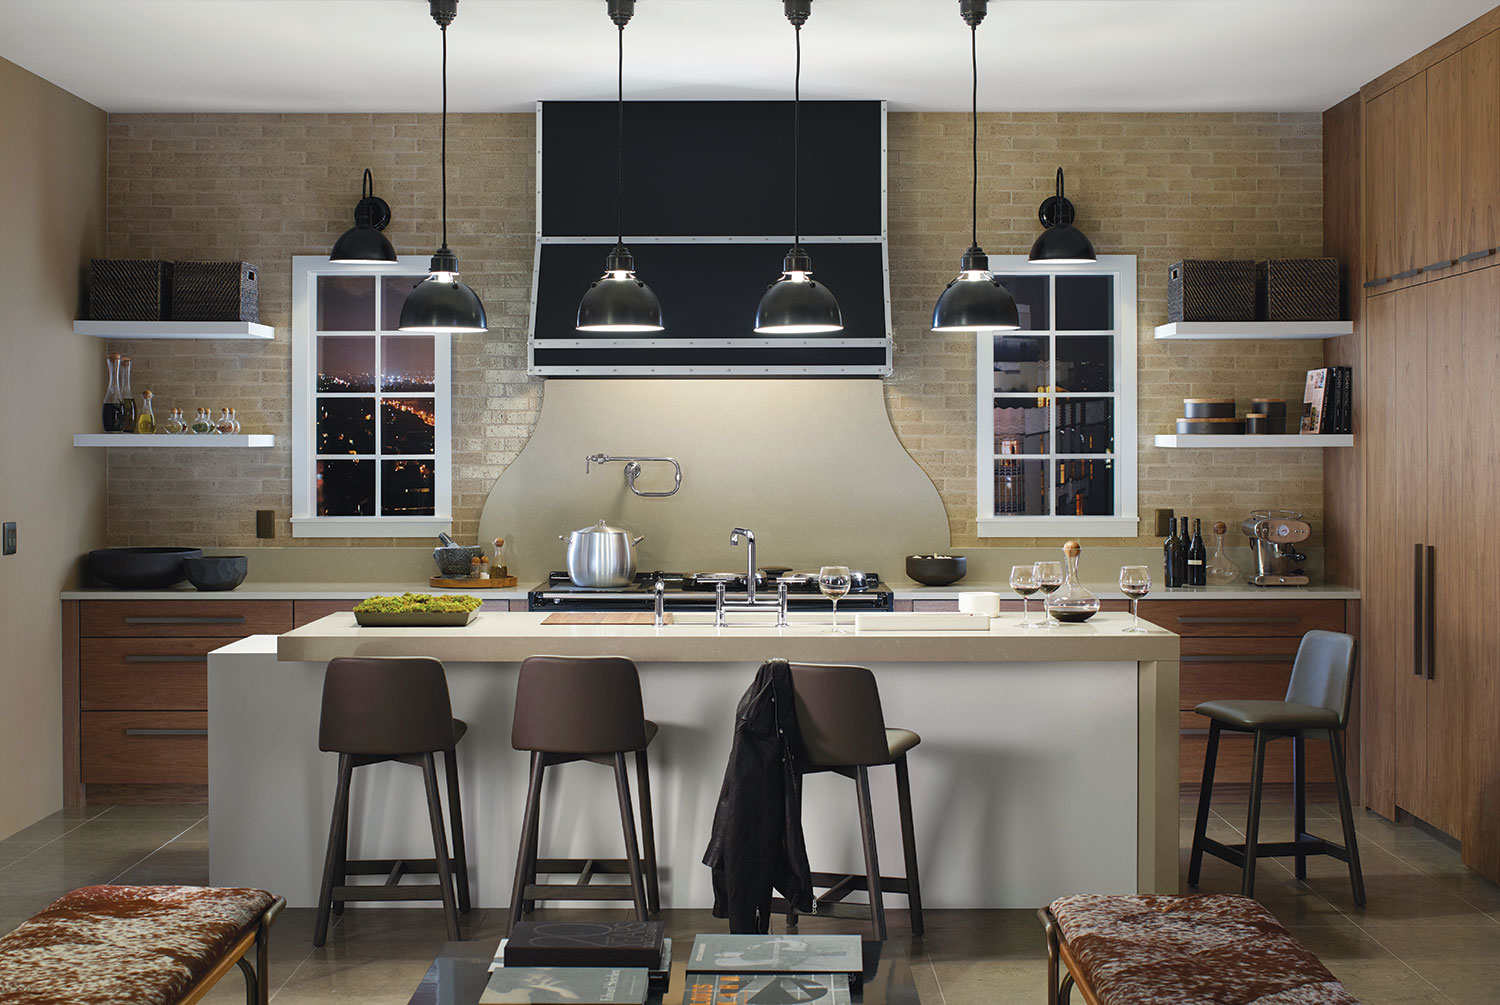 Concept kitchen by Mark Williams for Silestone, Benjamin Moore, and Kohler